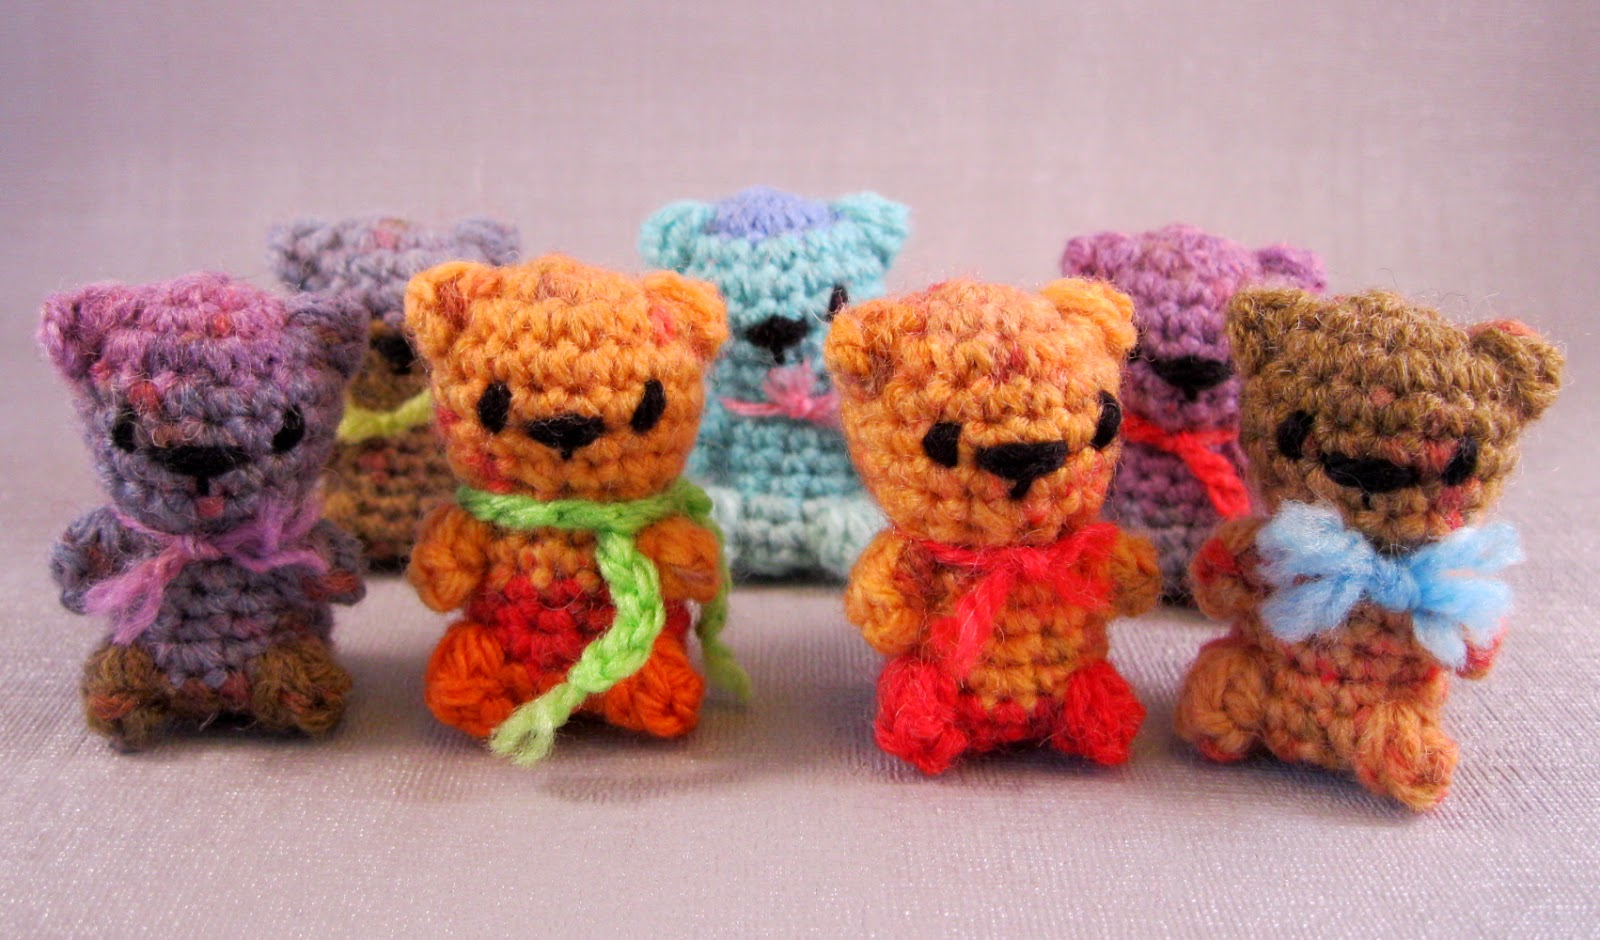 Amigurumi Free Patterns Bear : Lucyravenscar crochet creatures: mini teddies free amigurumi